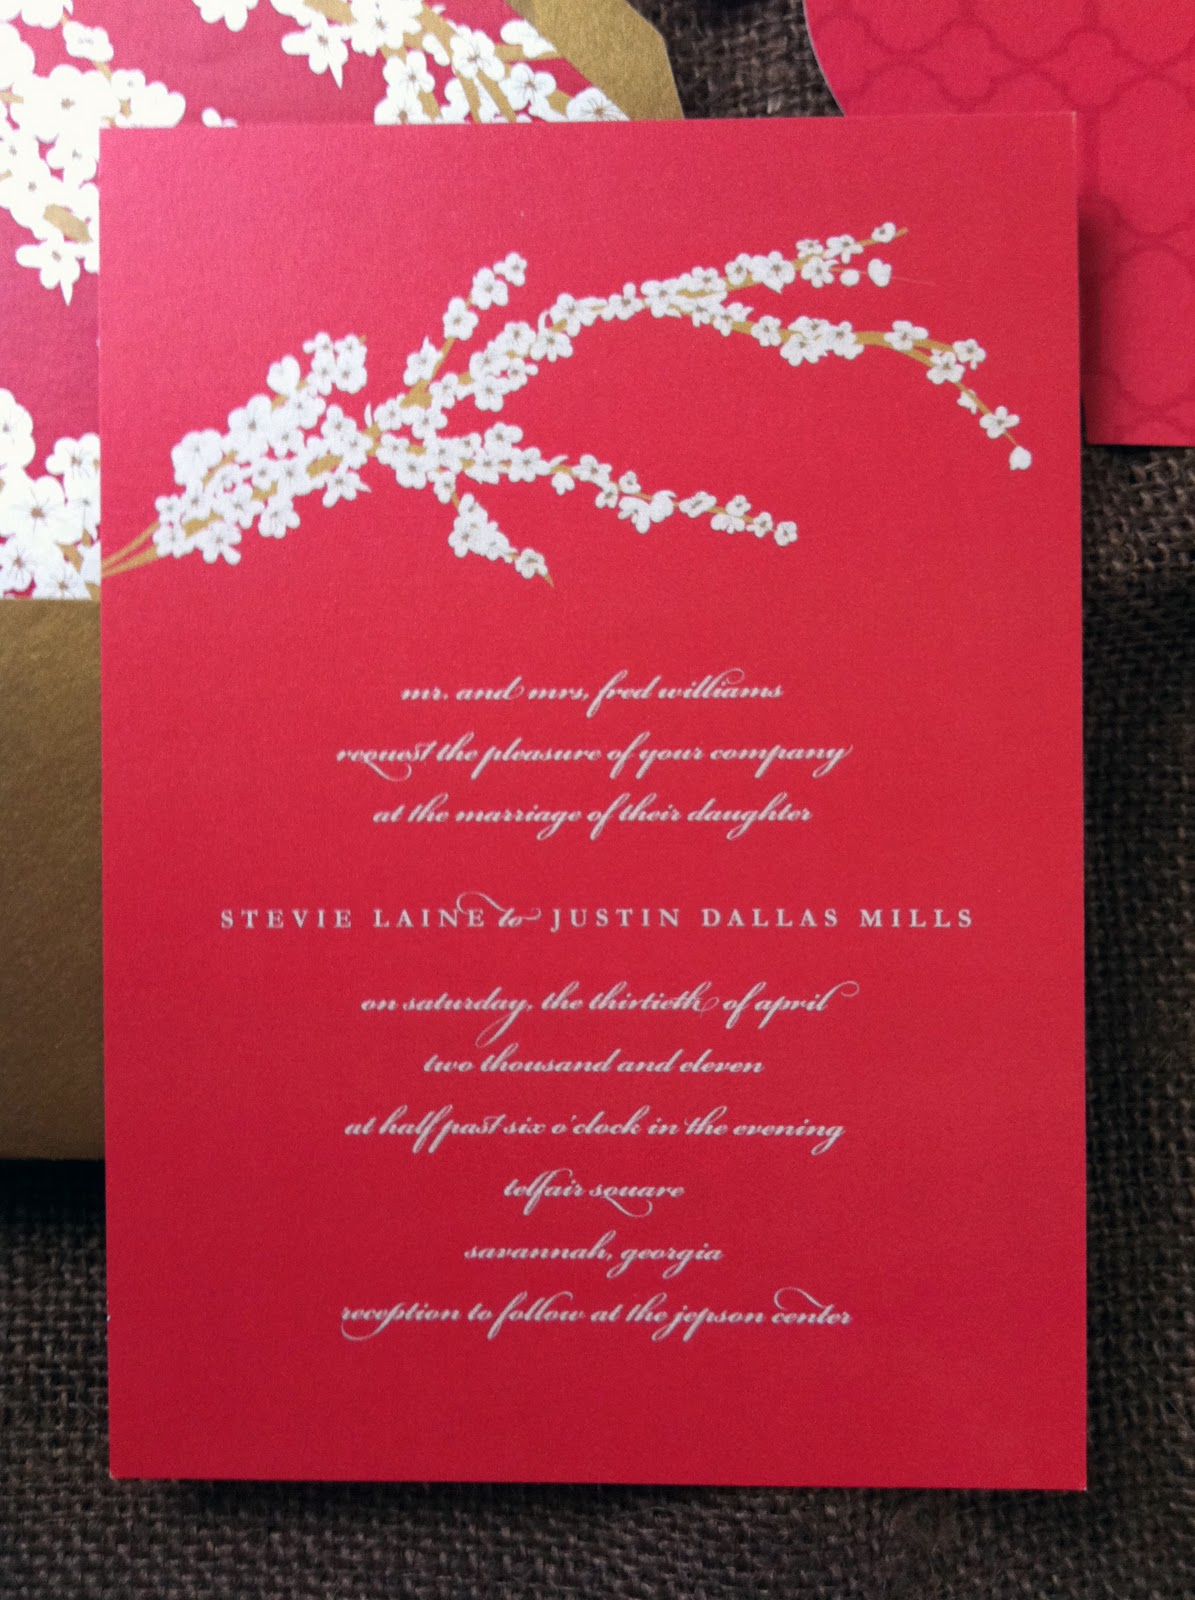 Dogwood Blossom Wedding Invitations { Savannah, GA } - emilymccarthy.com